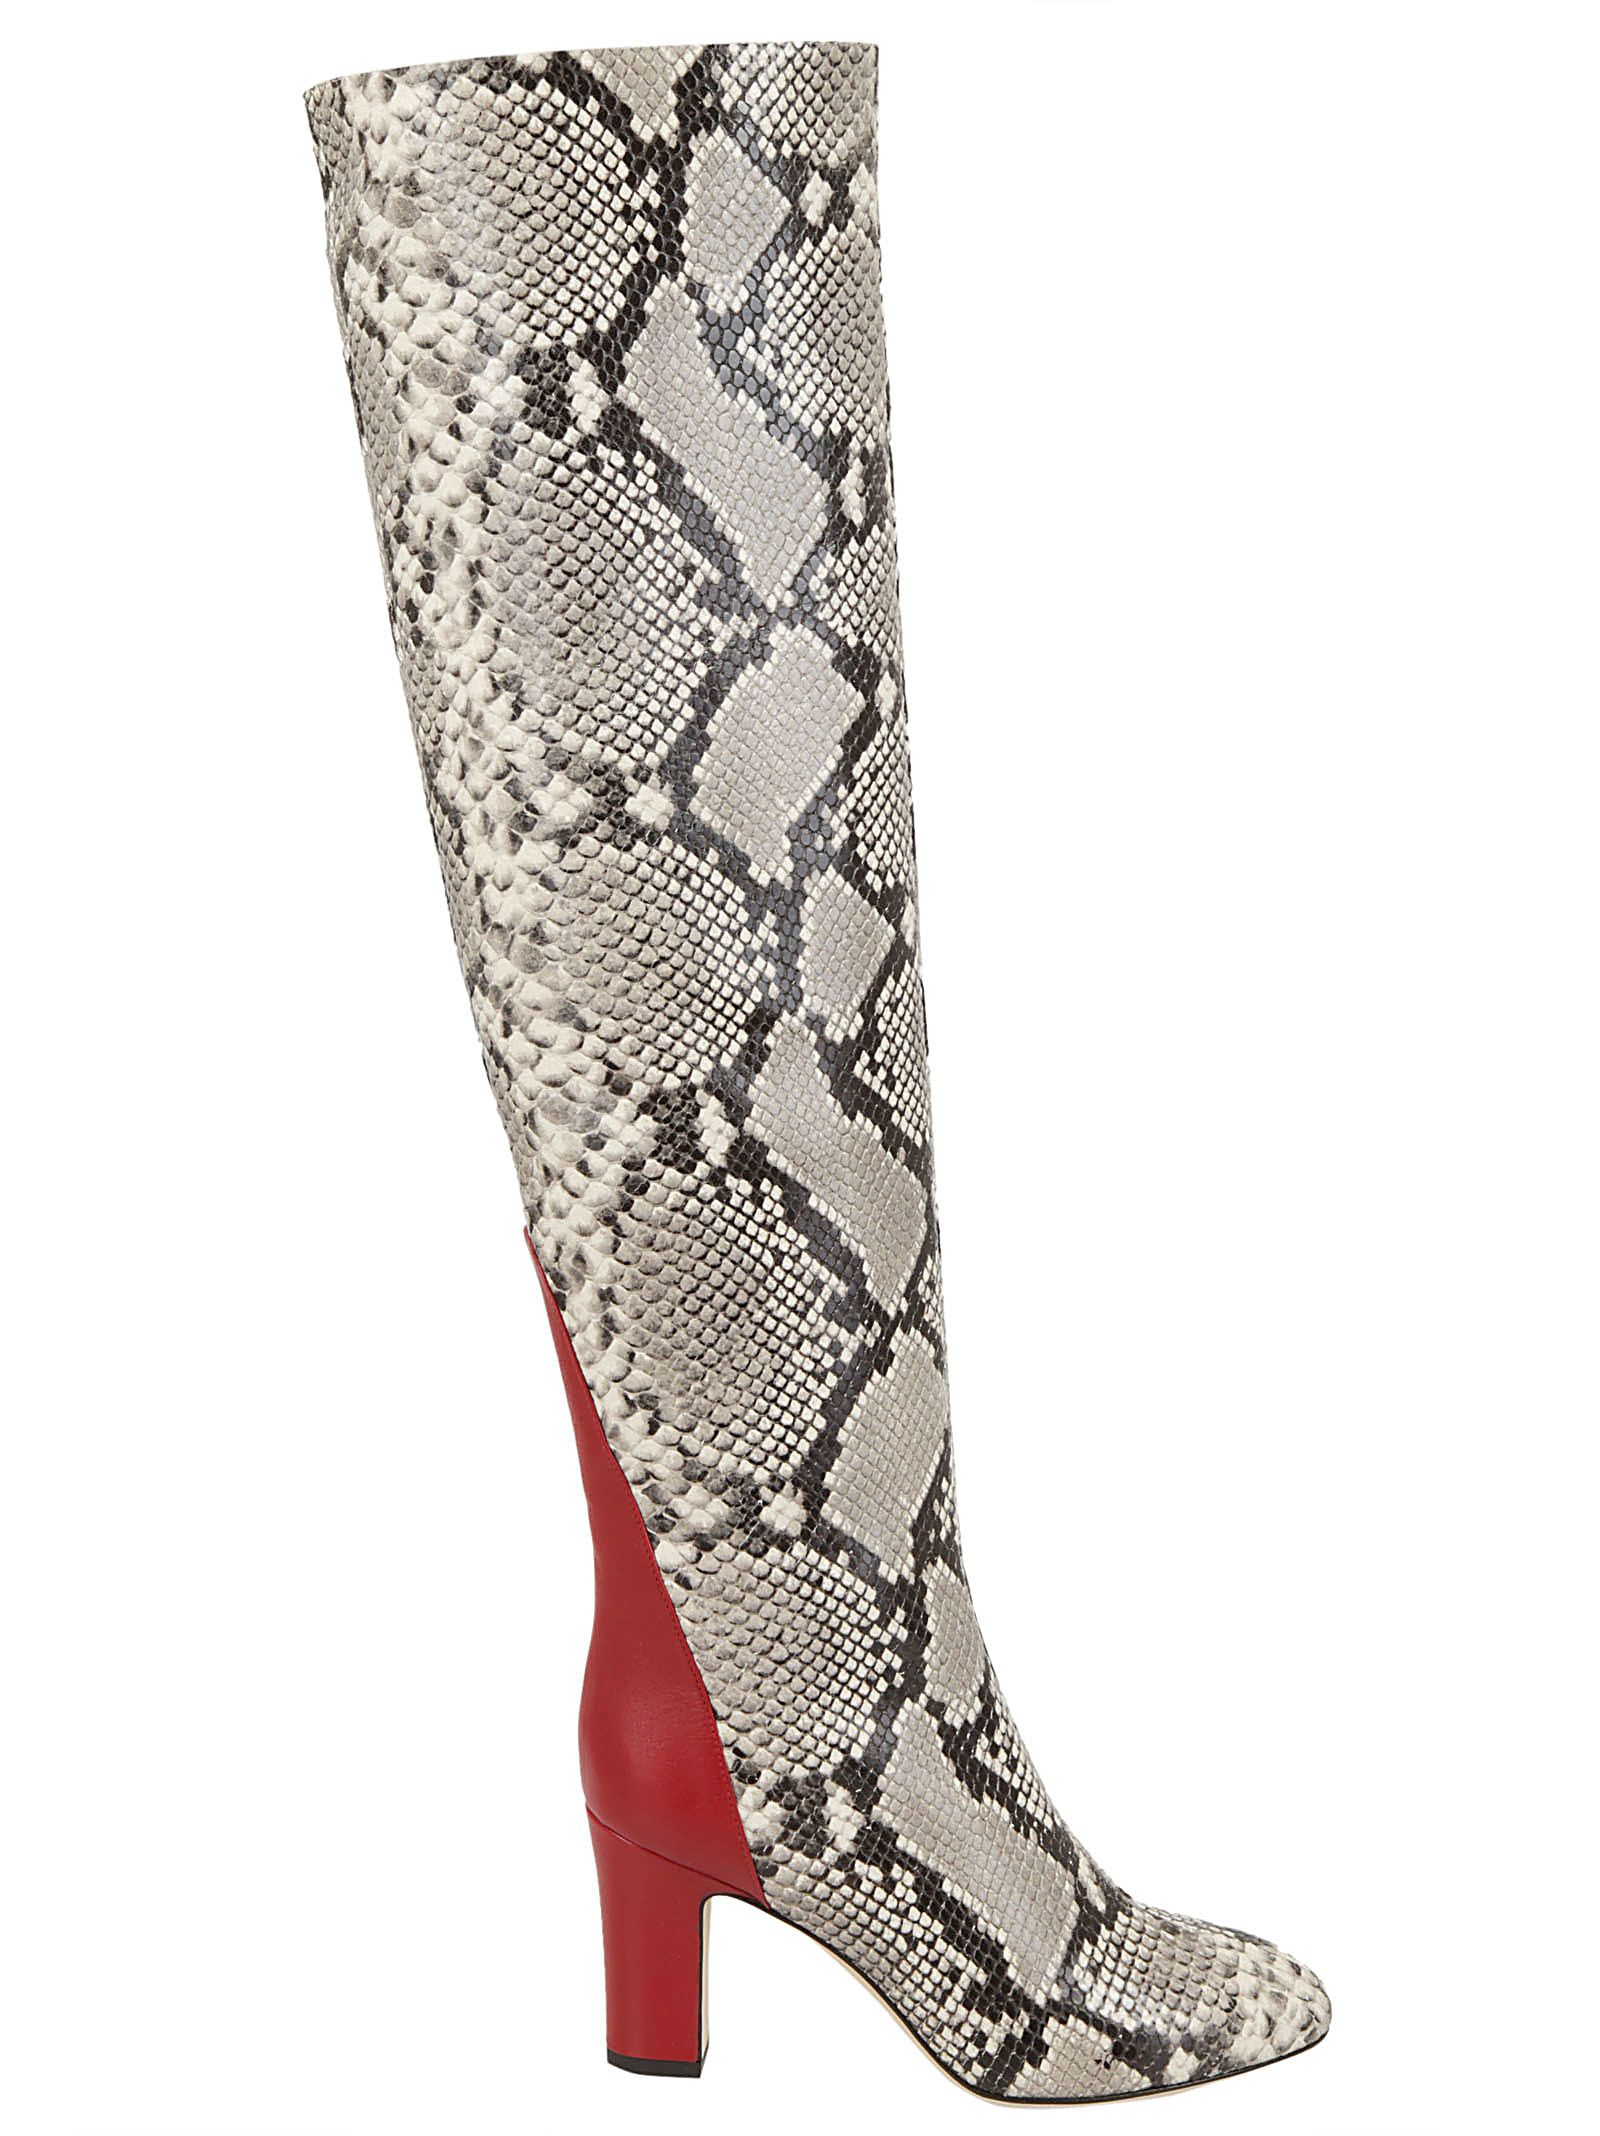 Python Print Knee High Boots in White